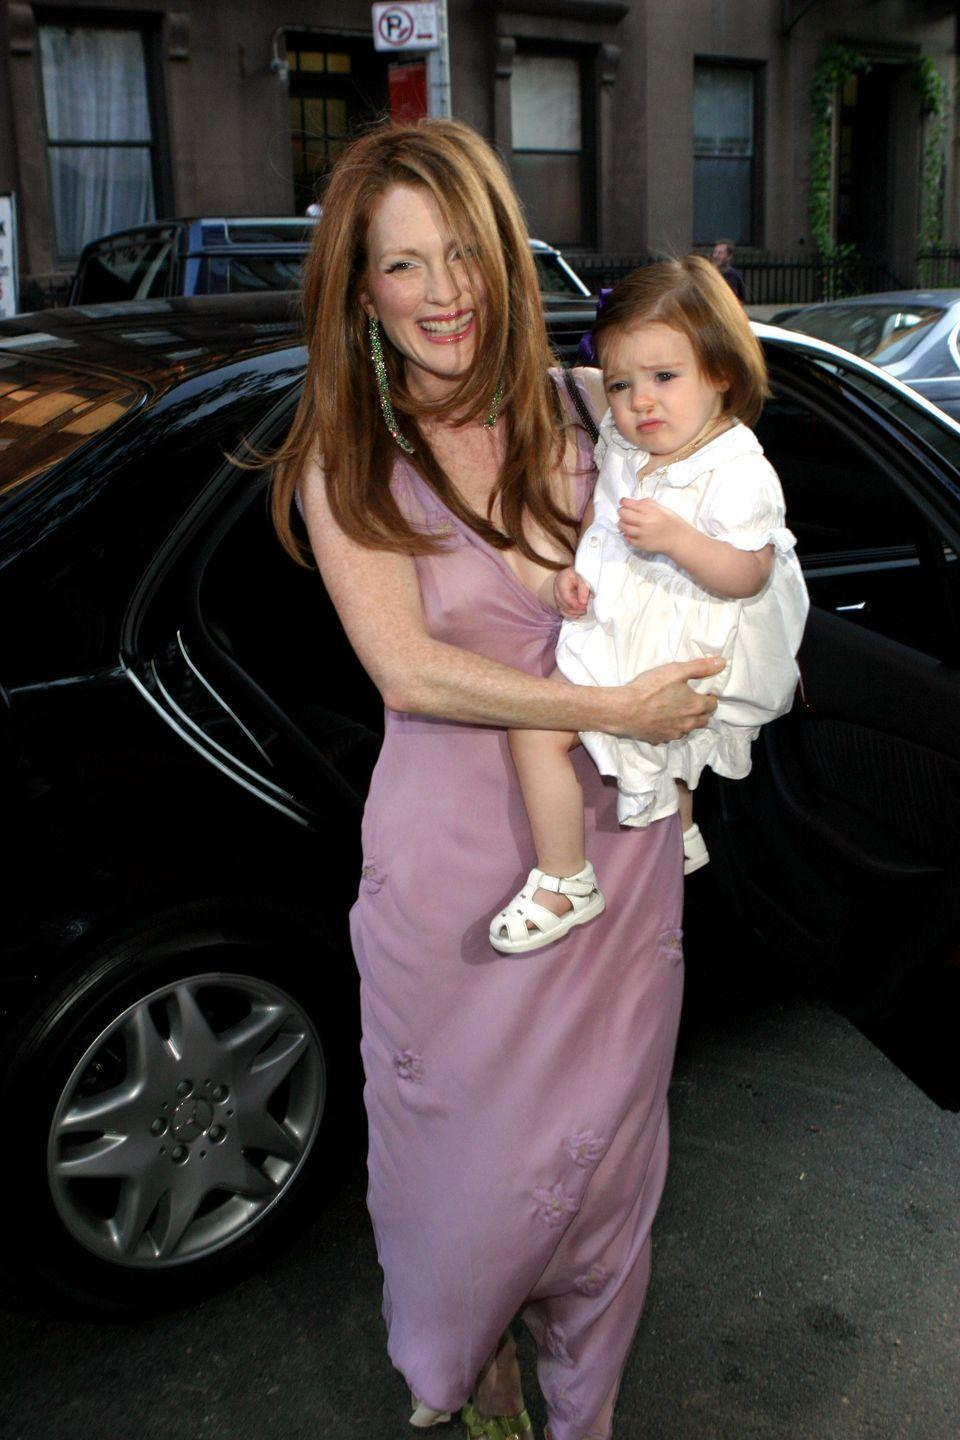 <p>For her wedding to director Bart Freundlich, Julianne Moore wore a embroidered lilac slip dress by Prada which she paired with complimenting emerald green accessories. Tres chic! </p>